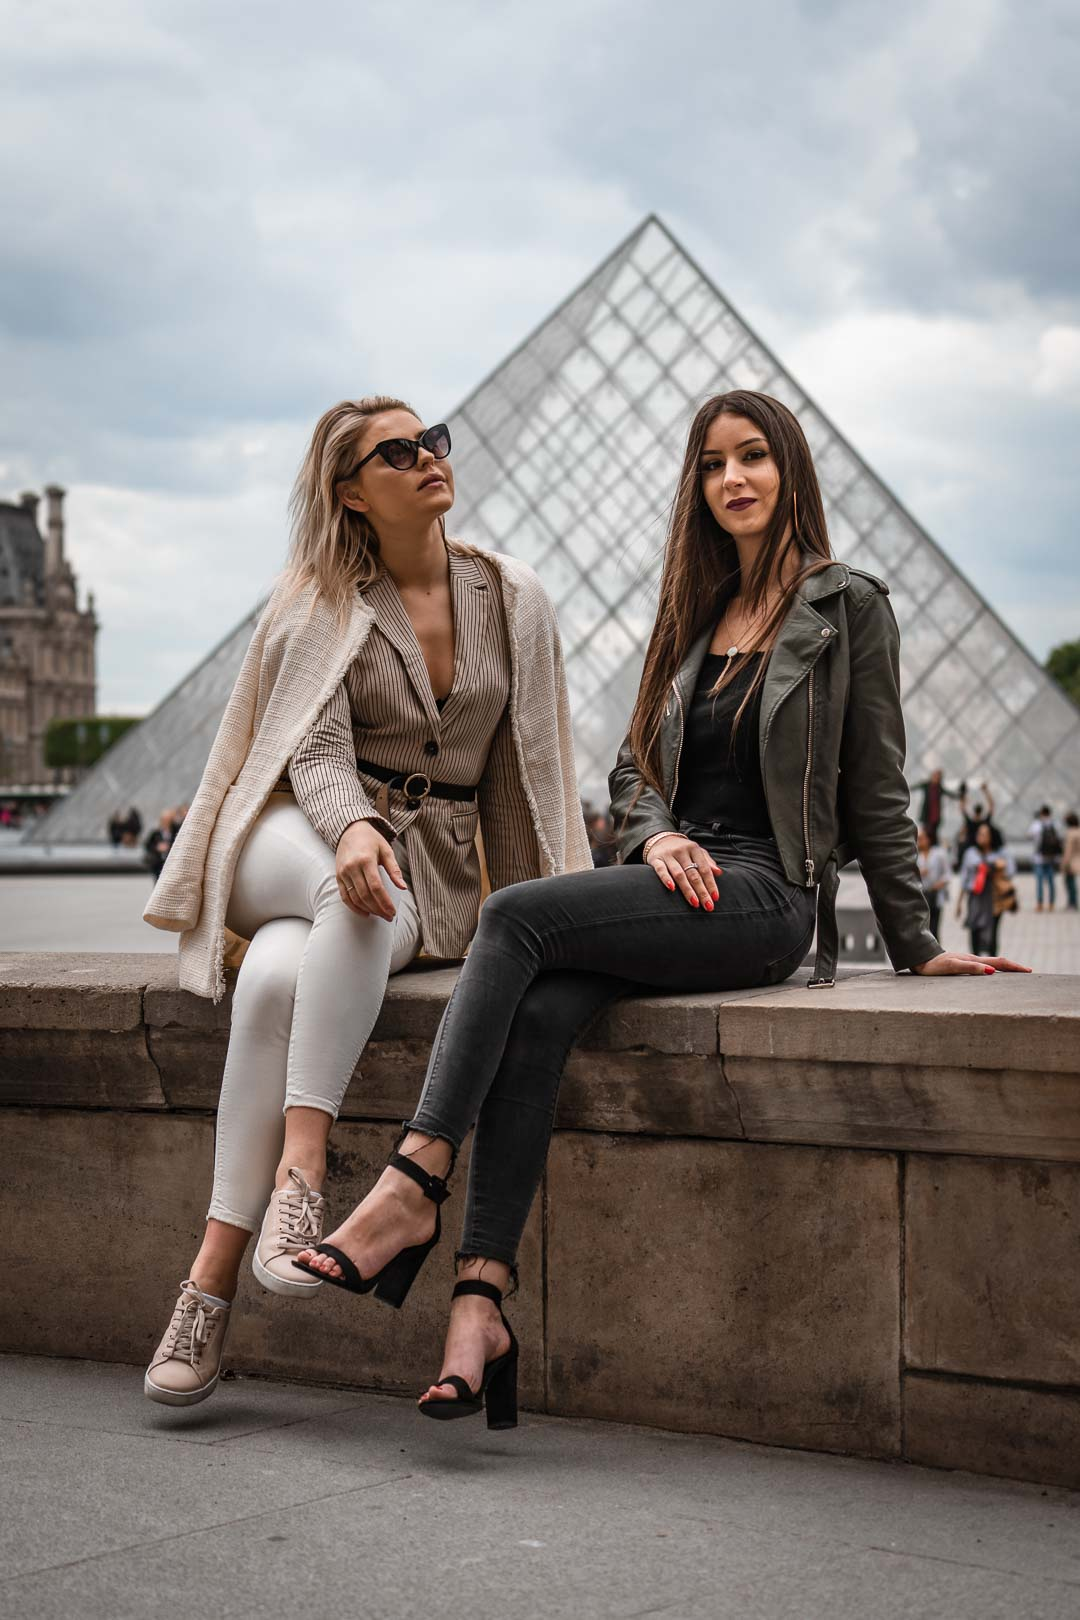 Photograph of two women seated in front of the Louvre pyramid